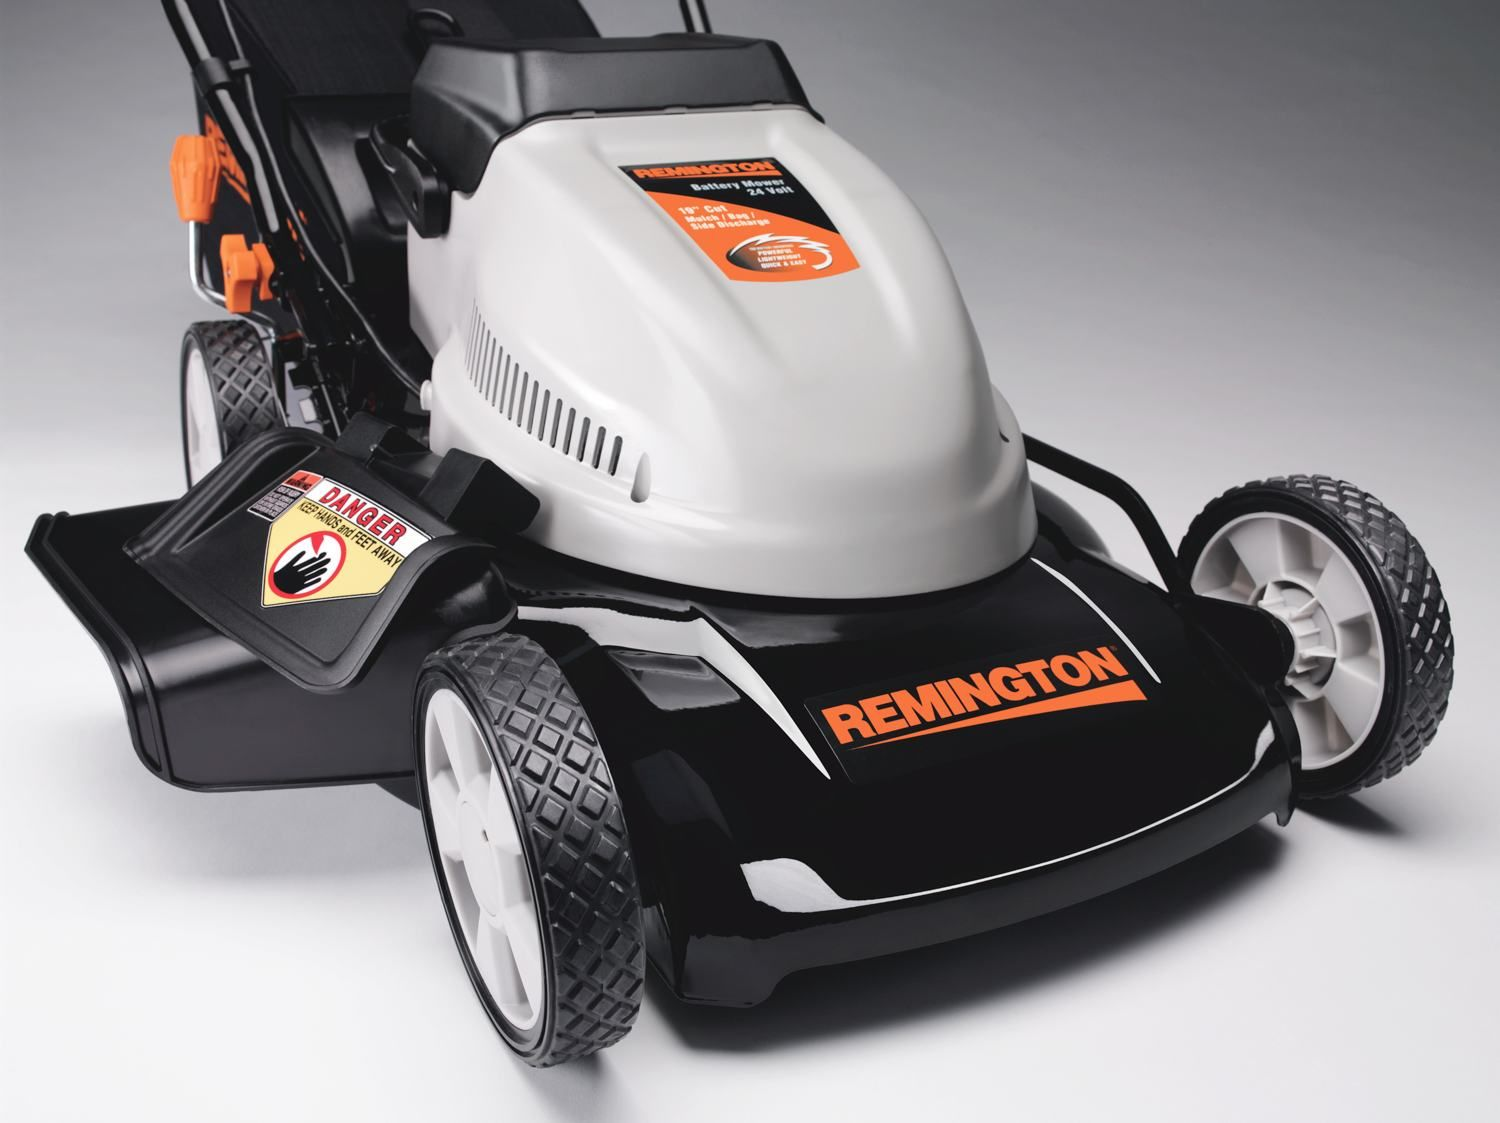 The Best Cordless Electric Lawn Mowers For 2020 Battery Powered Lawn Mower Cordless Lawn Mower Lawn Mower